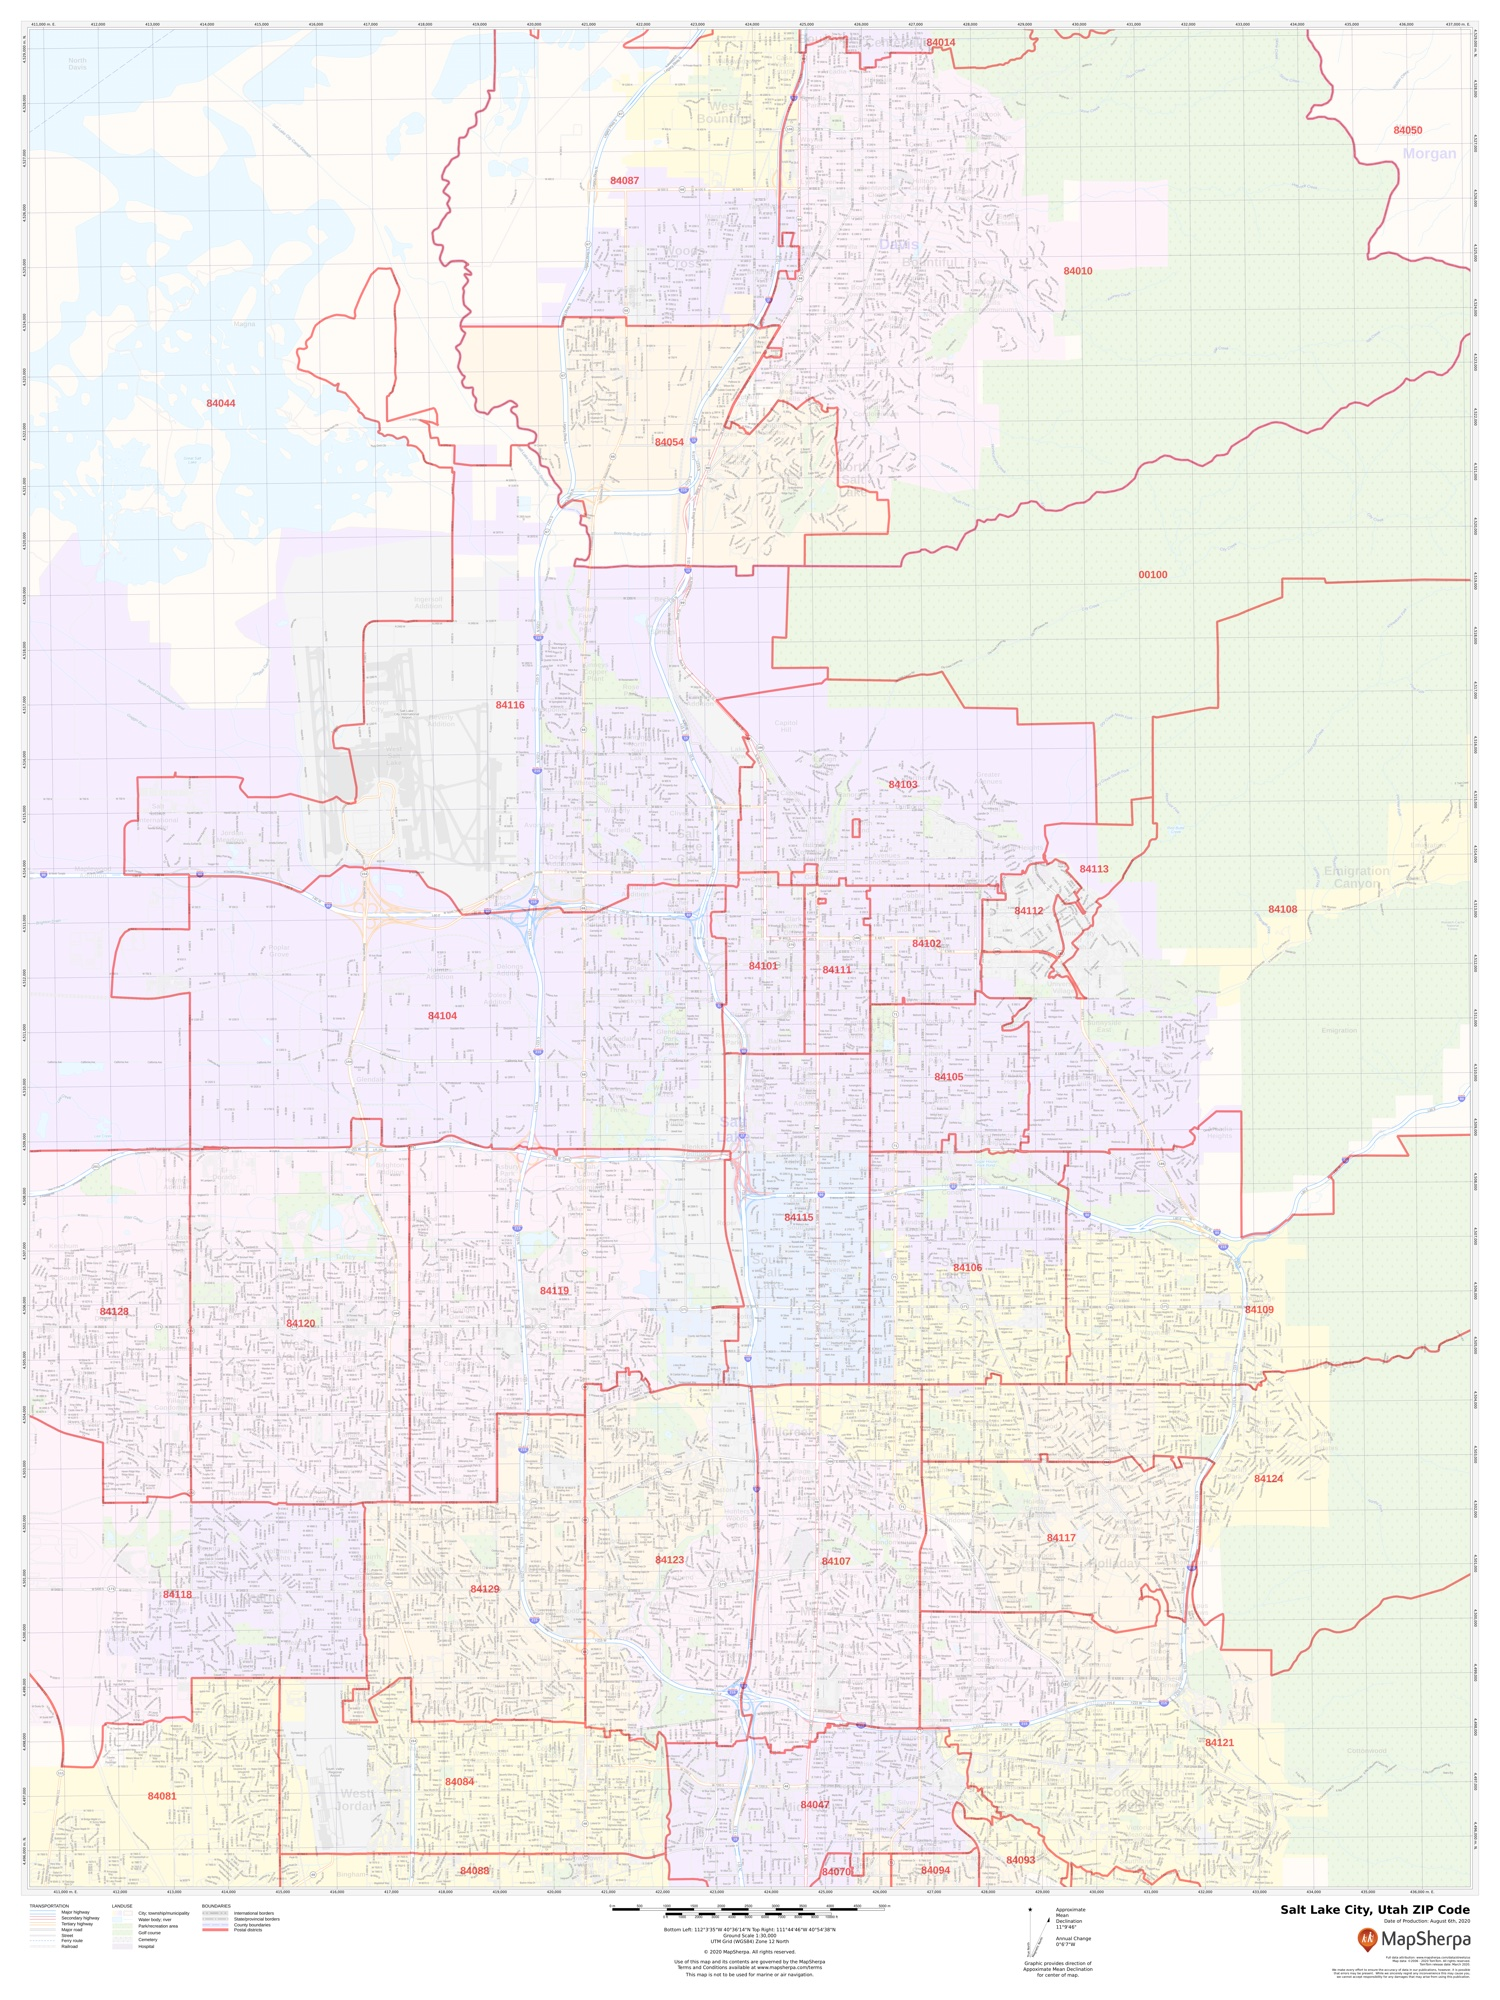 Salt Lake City Zip Code Map : Codes